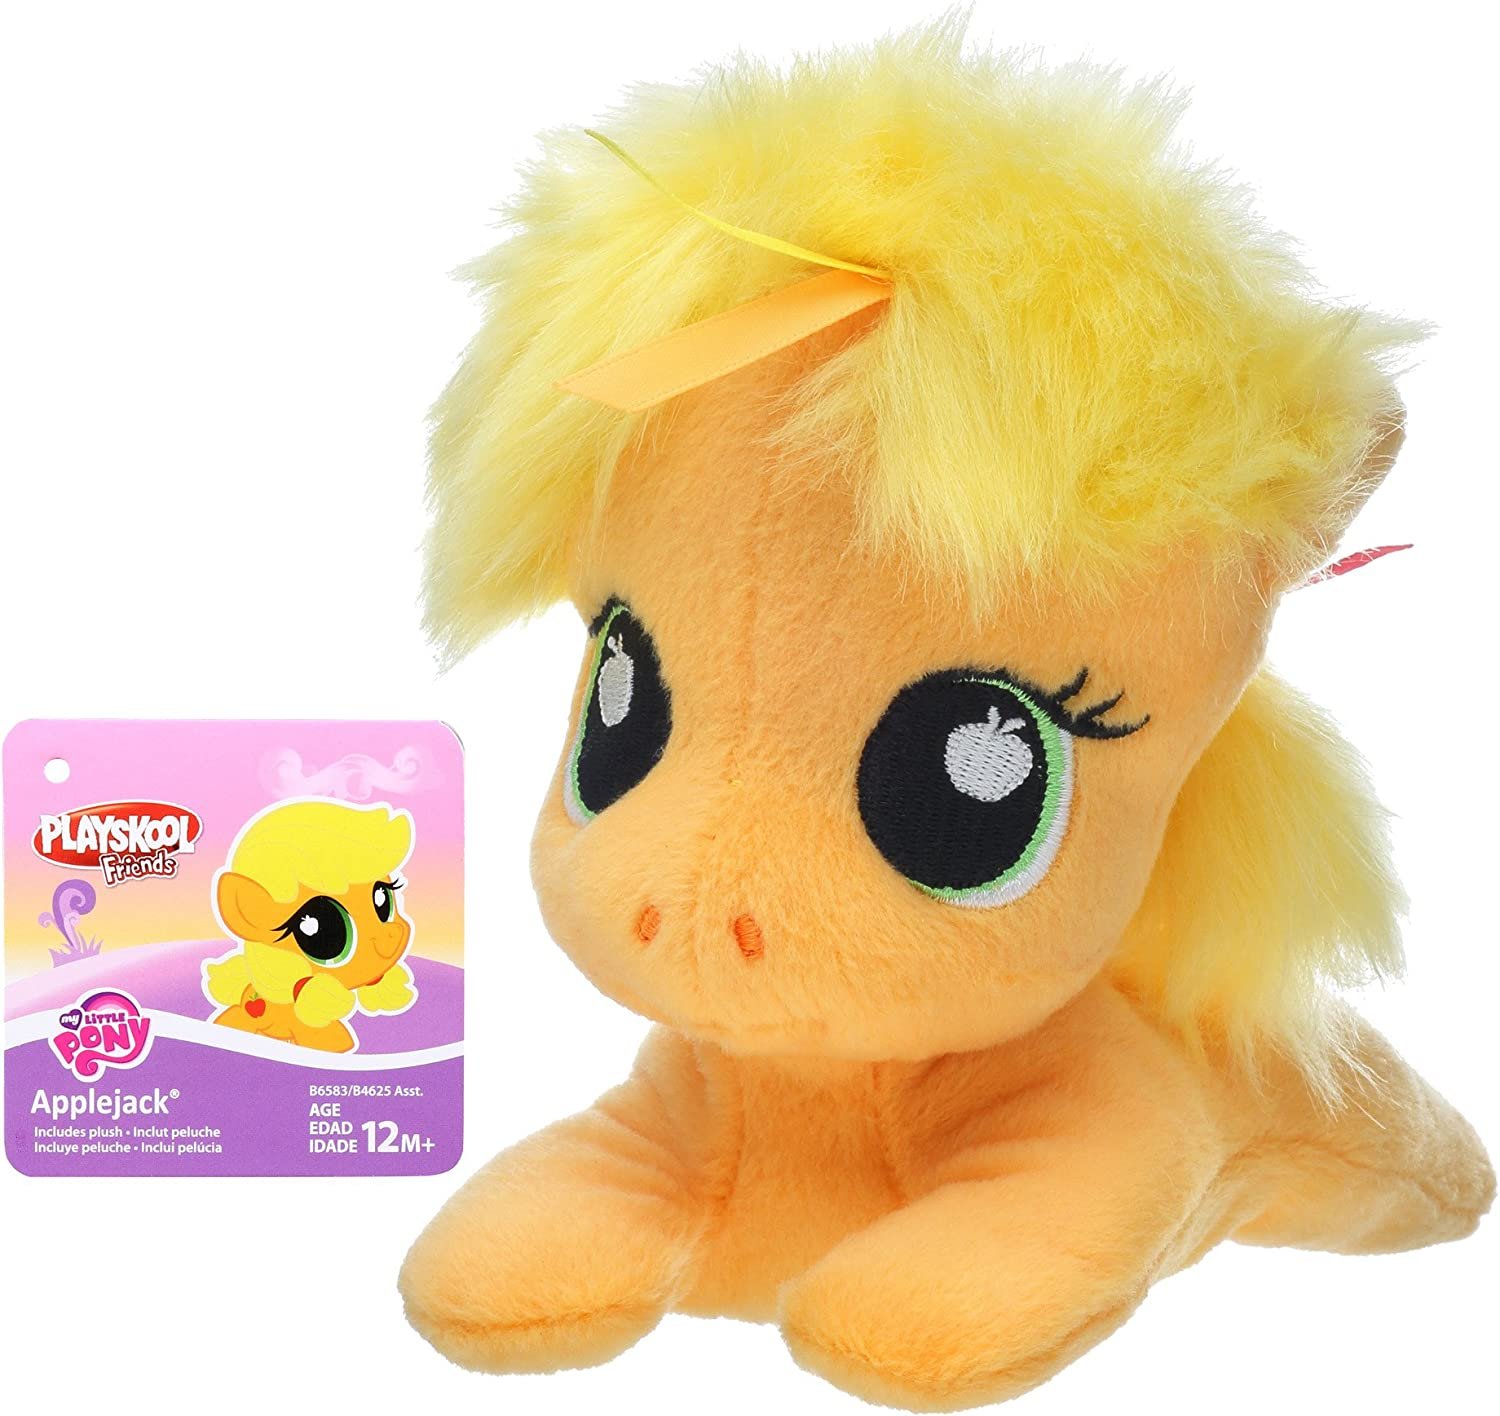 Ships Fast+ My Little Pony Applejack PlushToy Playskool Freinds Collectible